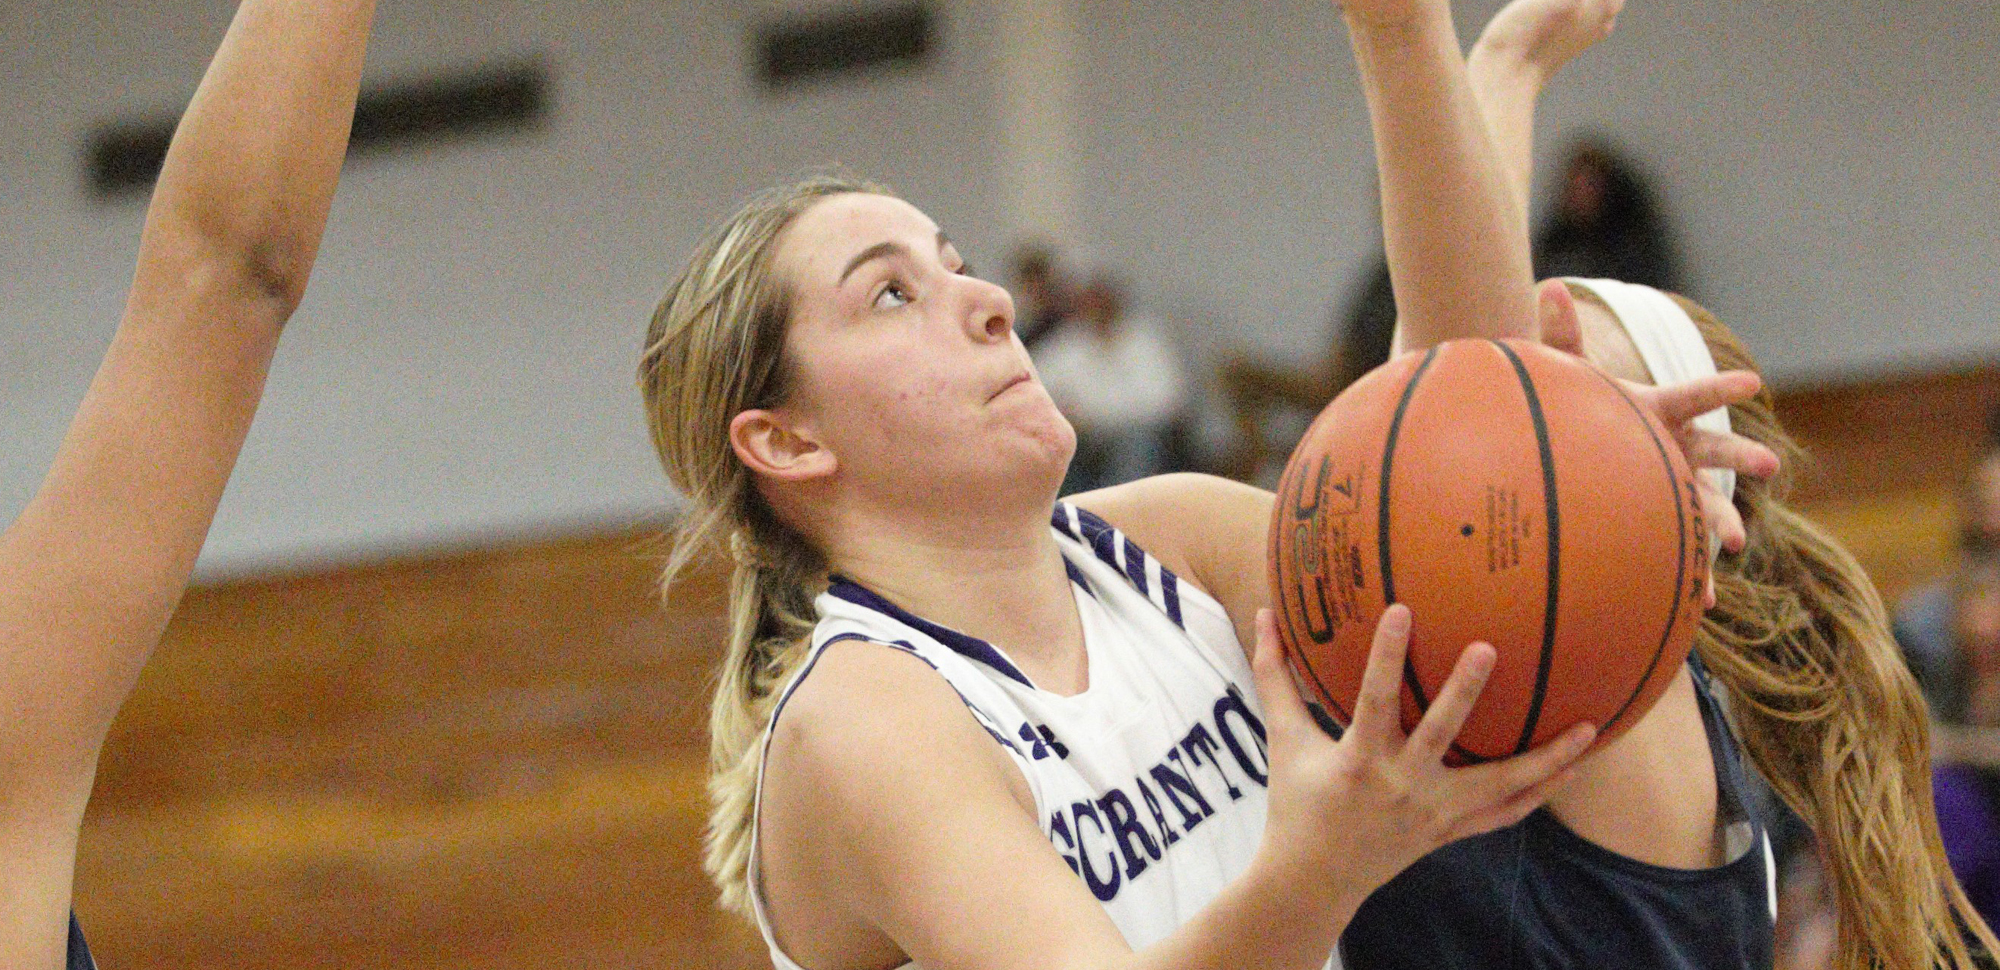 Sofia Recupero recorded 10 points, six rebounds, and two blocks in Scranton's win over Moravian on Wednesday night.